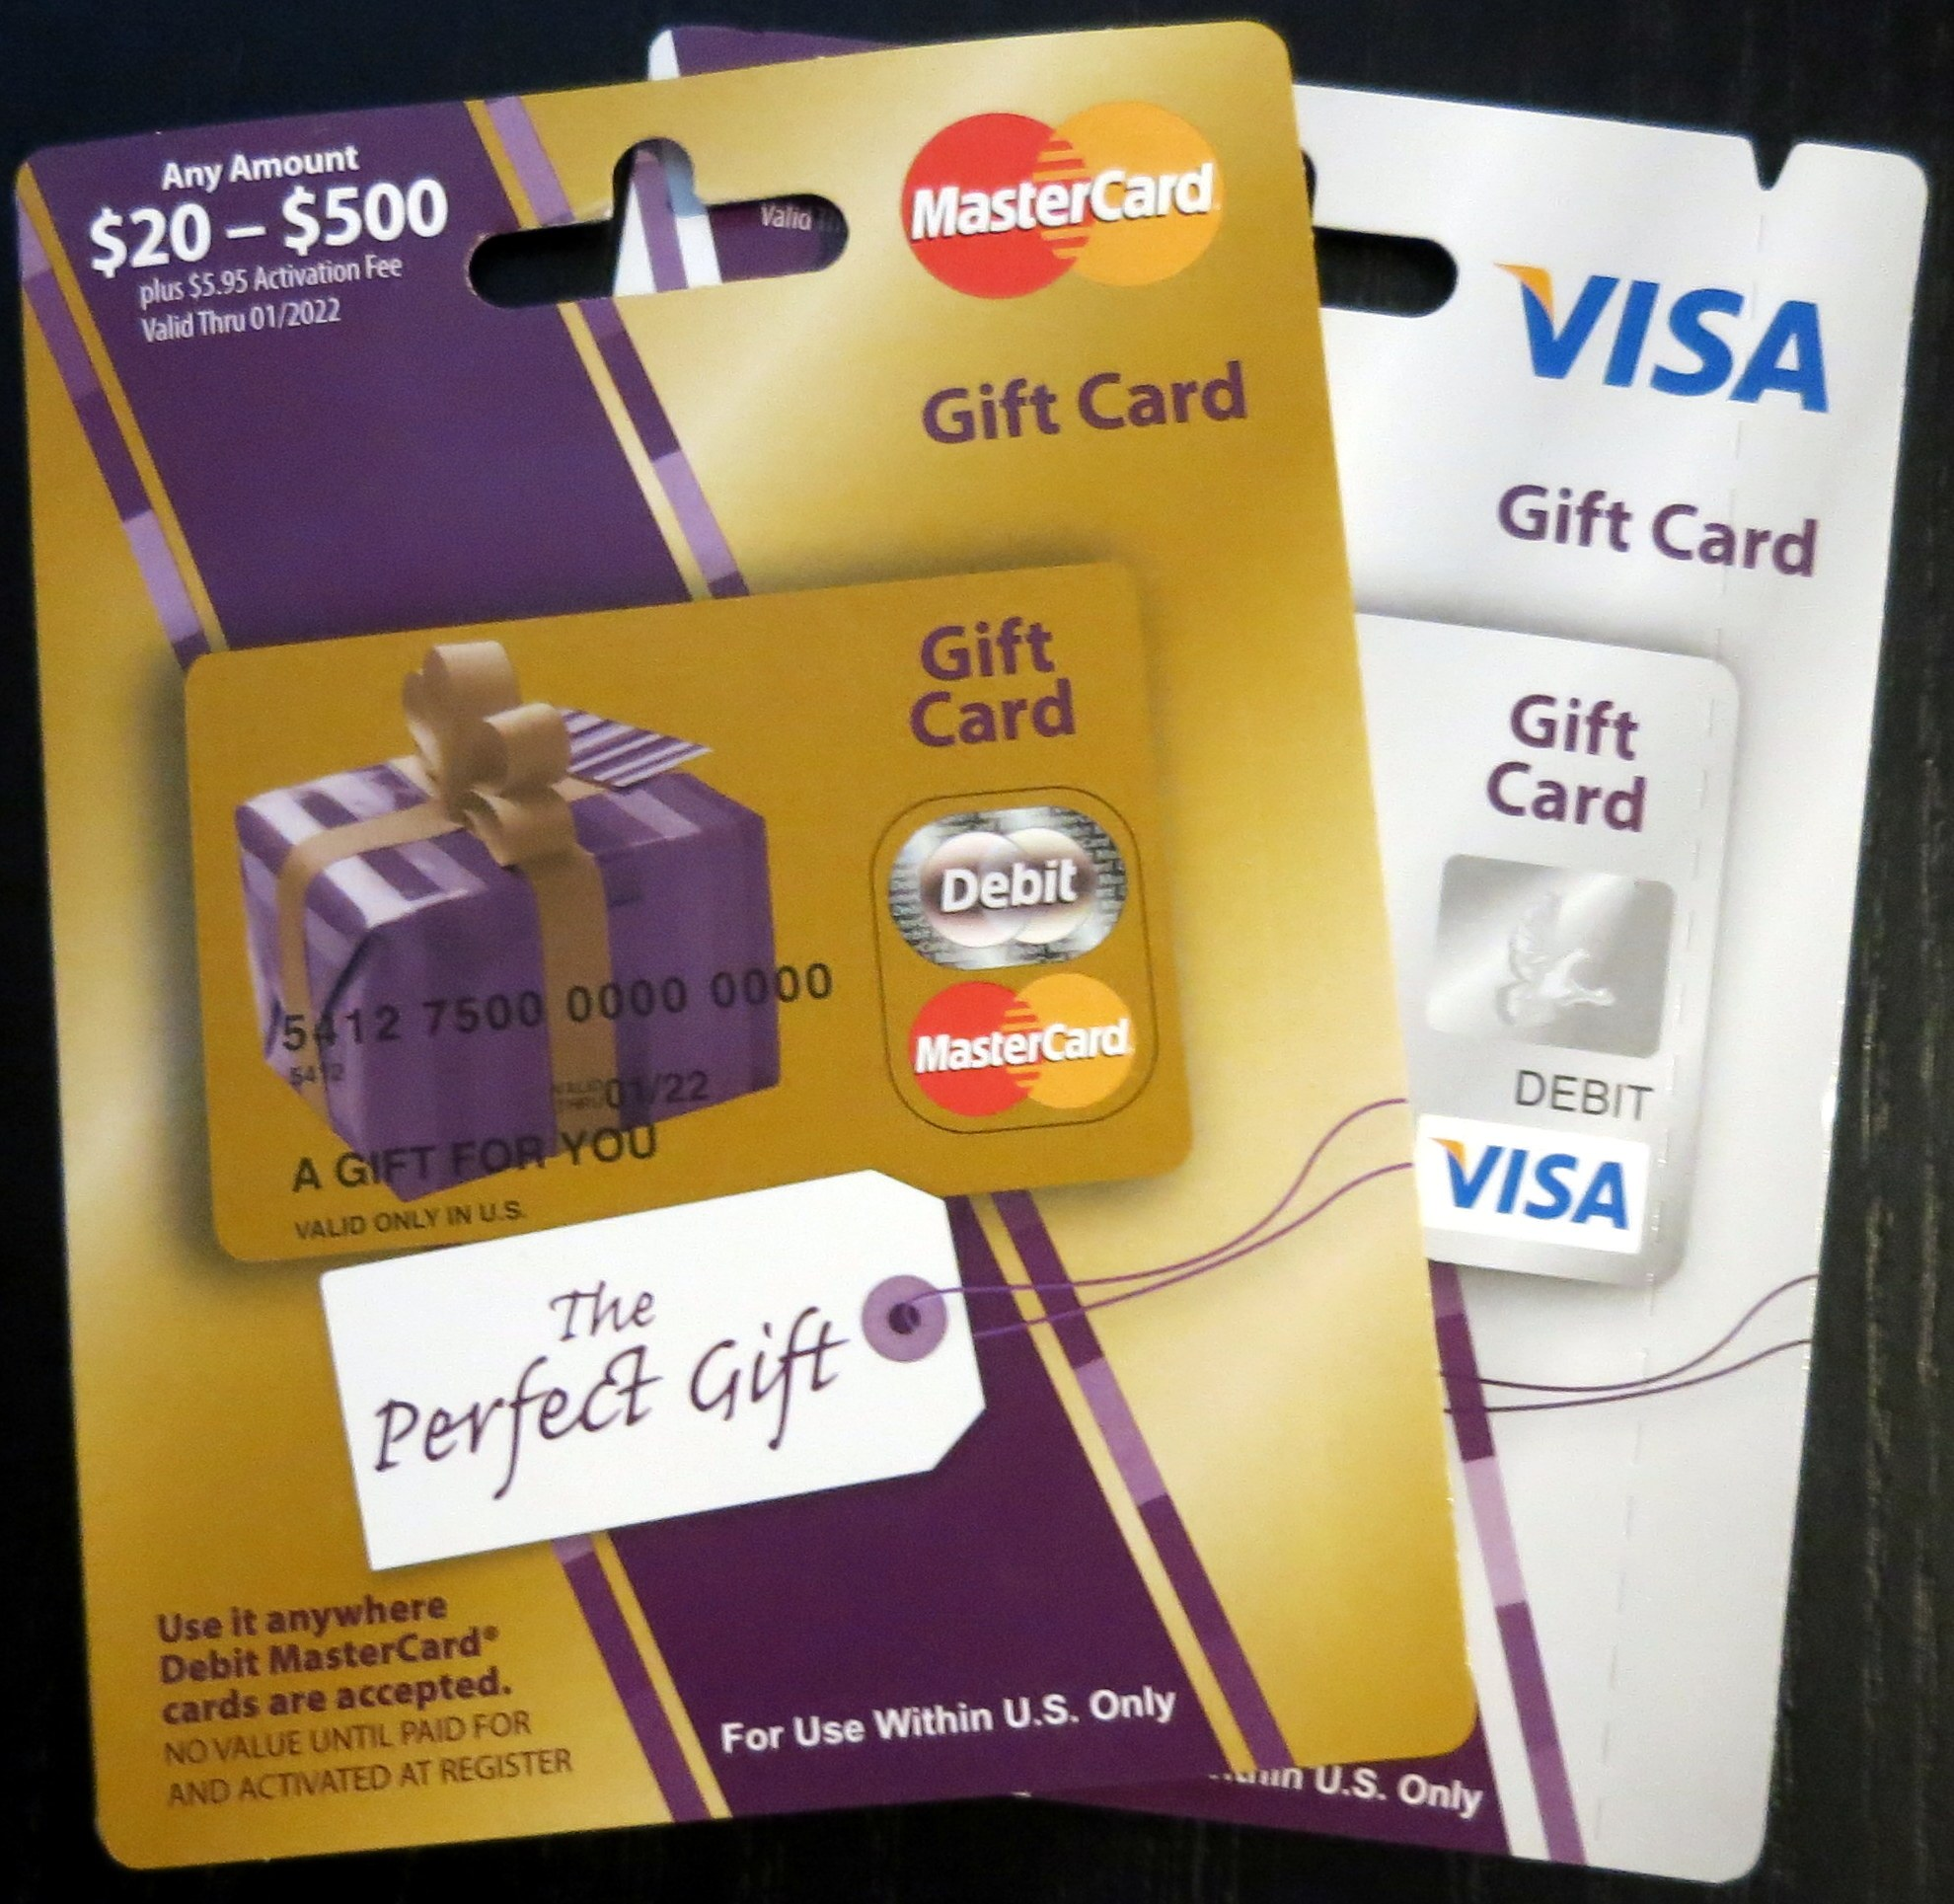 How Do I Use A VISA Gift Card To Make A Steam Purchase?